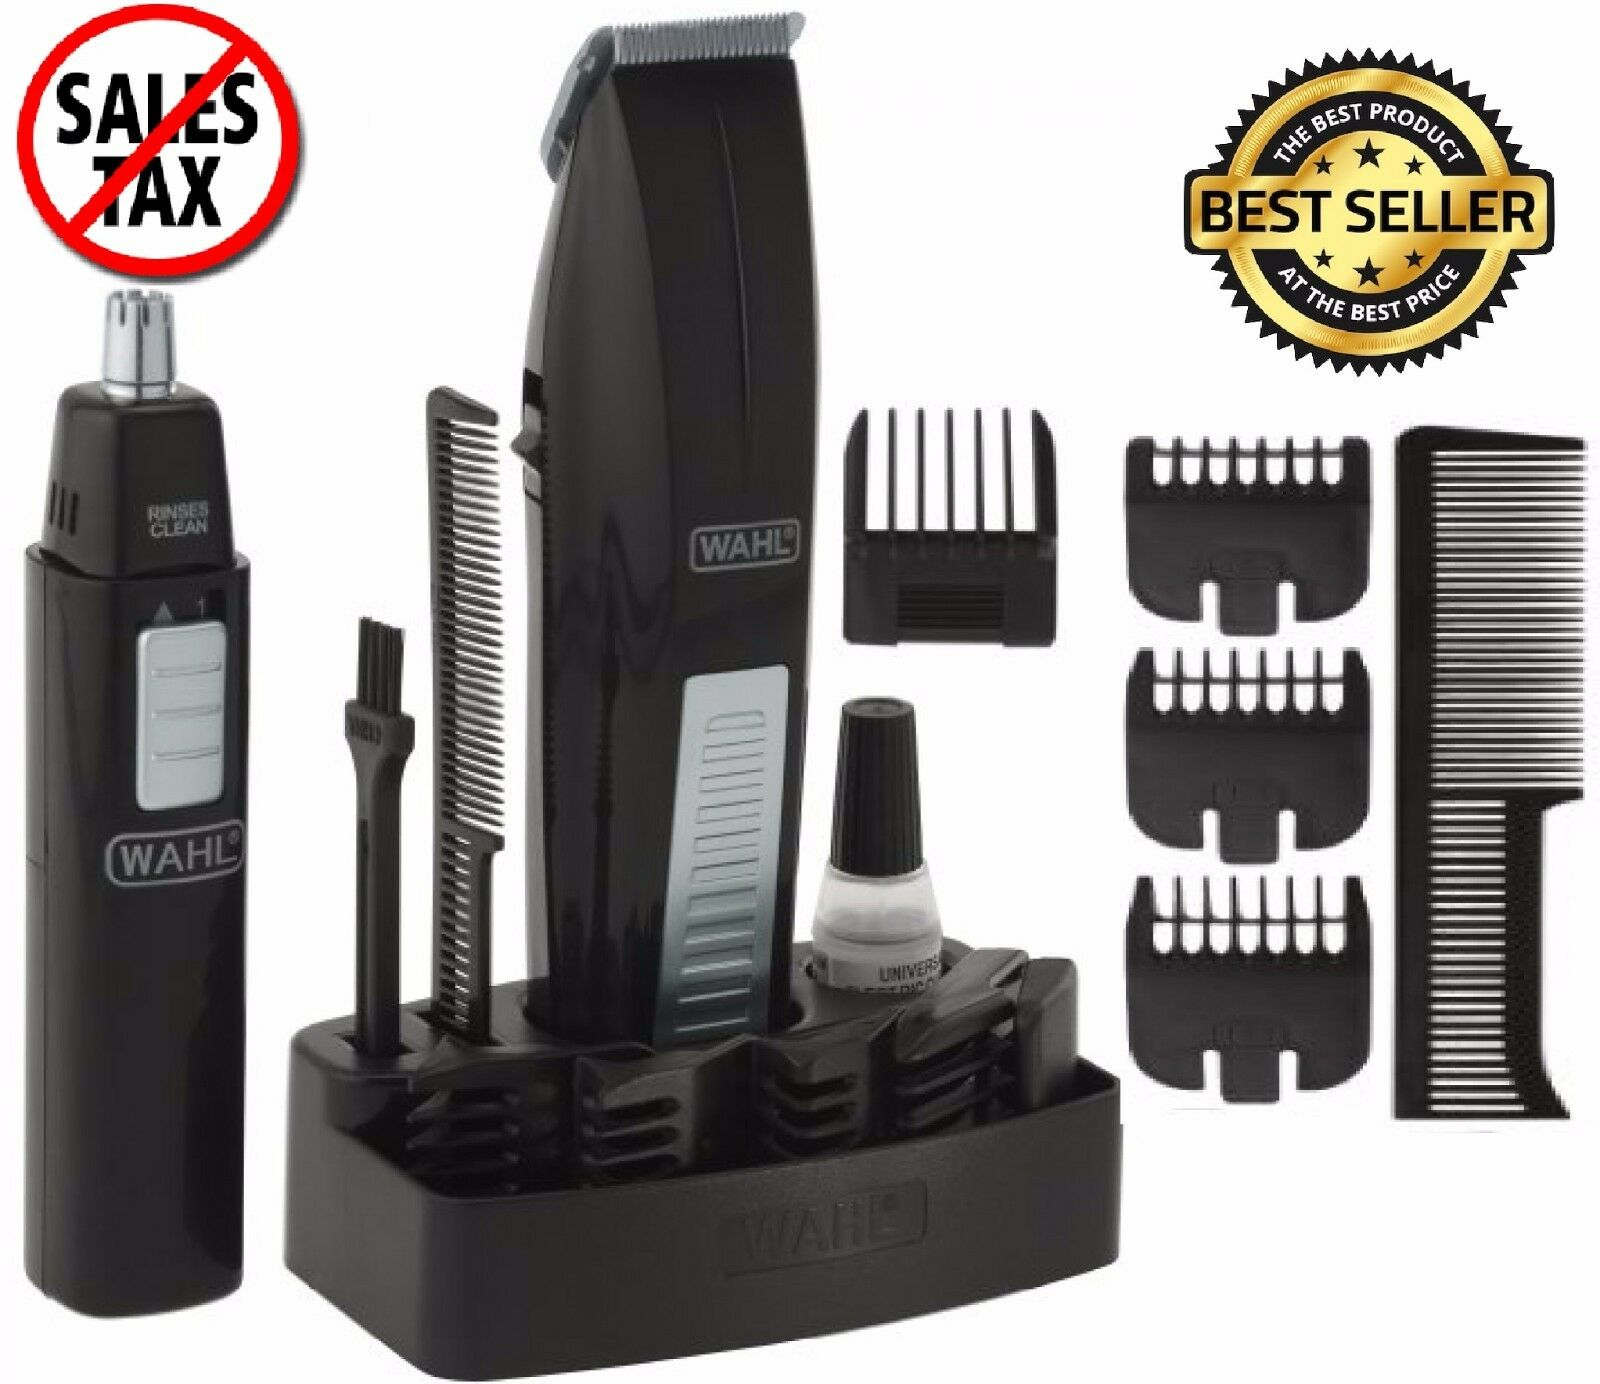 wahl mustache and beard trimmer set hair cut clipper kit ear nose groomer shaver ebay. Black Bedroom Furniture Sets. Home Design Ideas